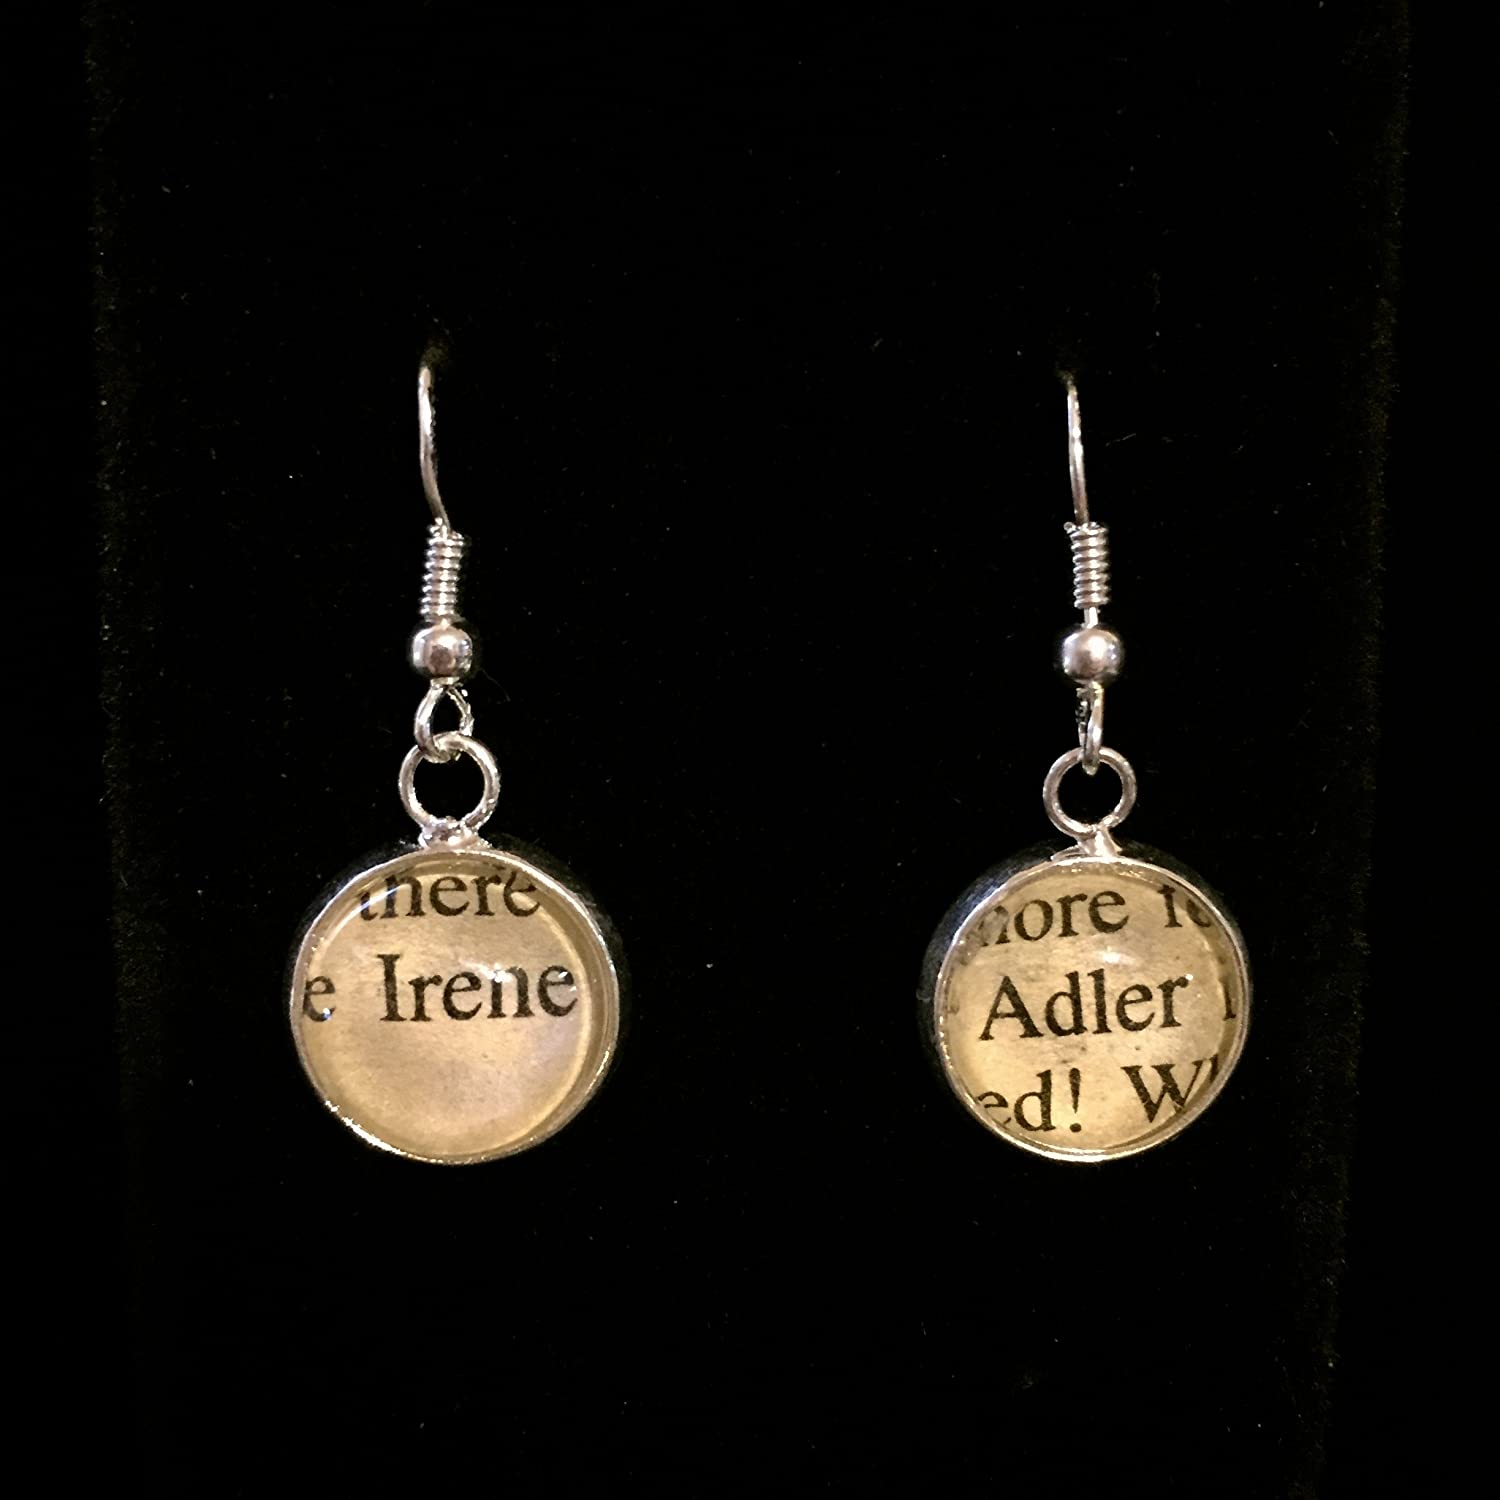 Sherlock Holmes Irene Adler Earrings with Sterling Silver Hooks